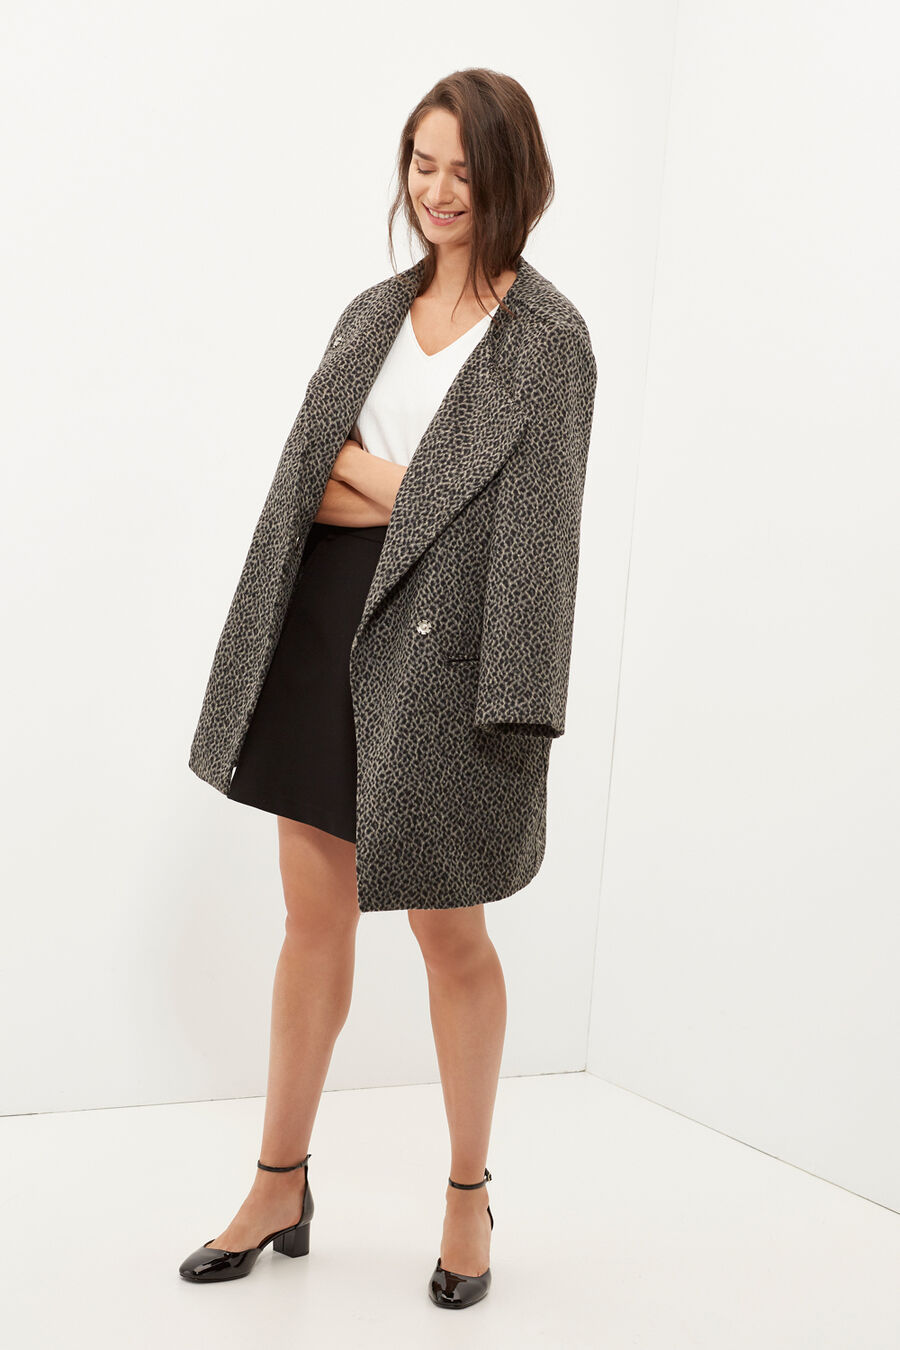 Patterned coat